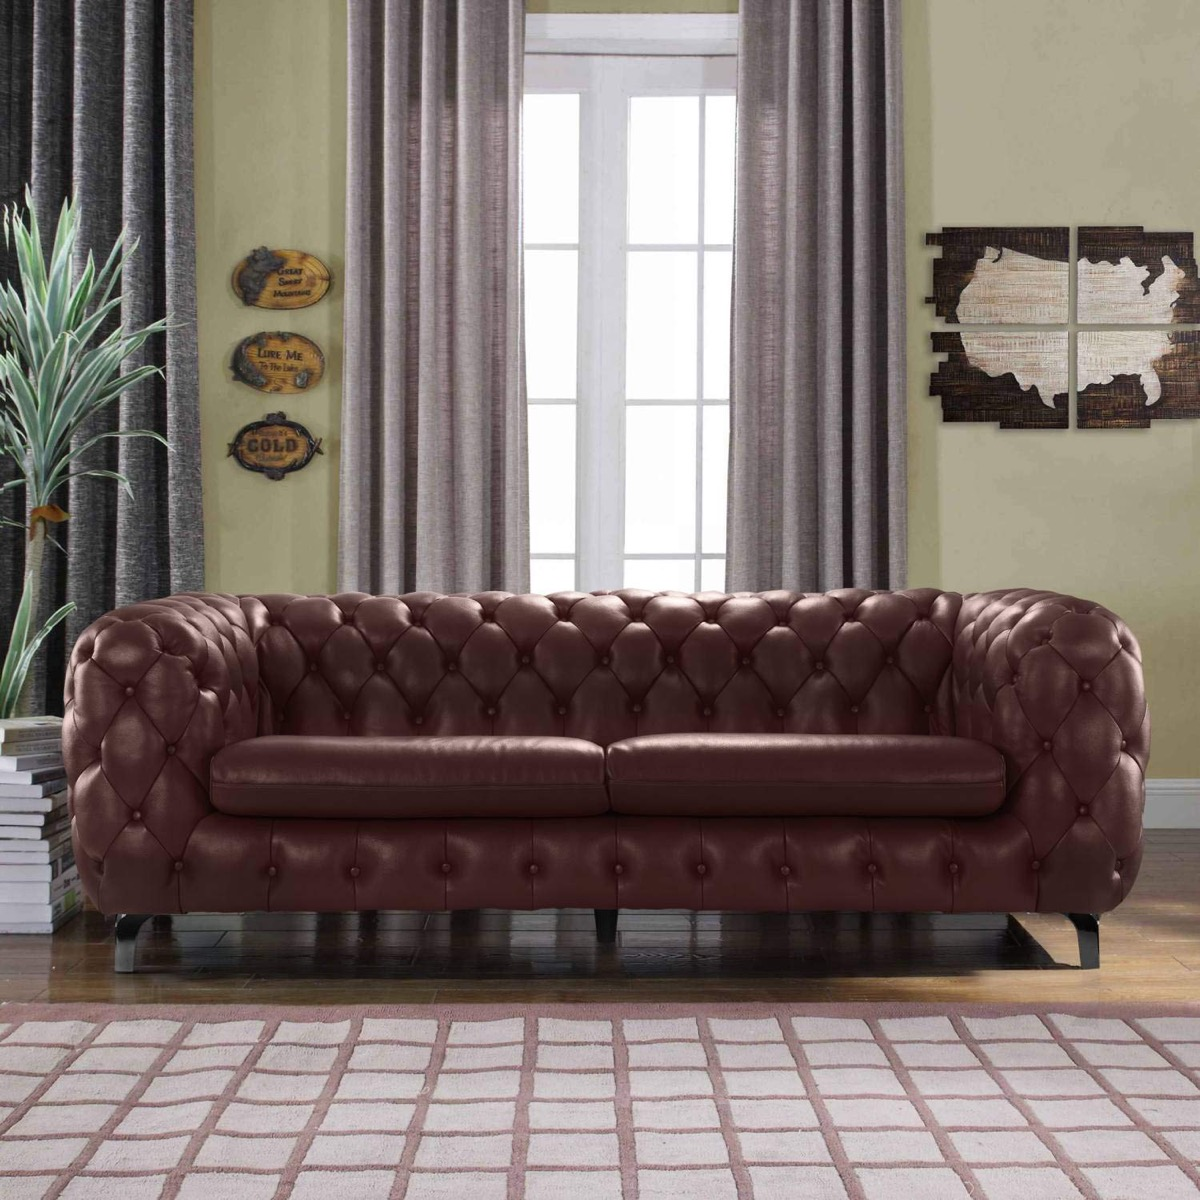 unique-diamond-tufted-chesterfield-sofa-burgundy-leather-with-extra-wide-arms